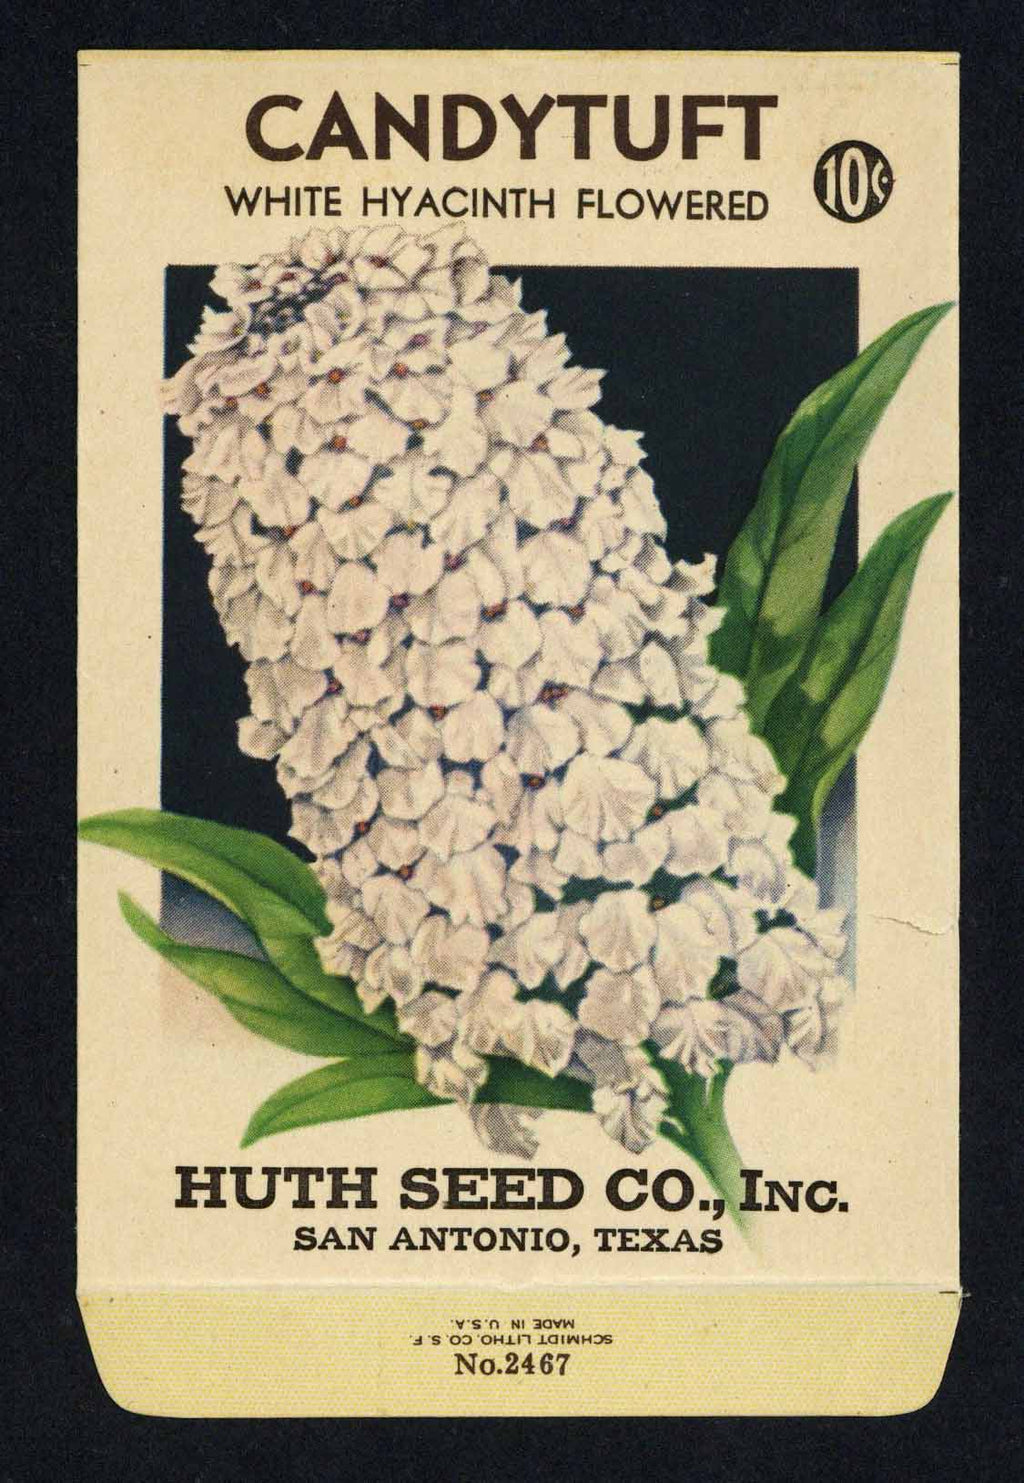 Candytuft Antique Huth Seed Co. Seed Packet